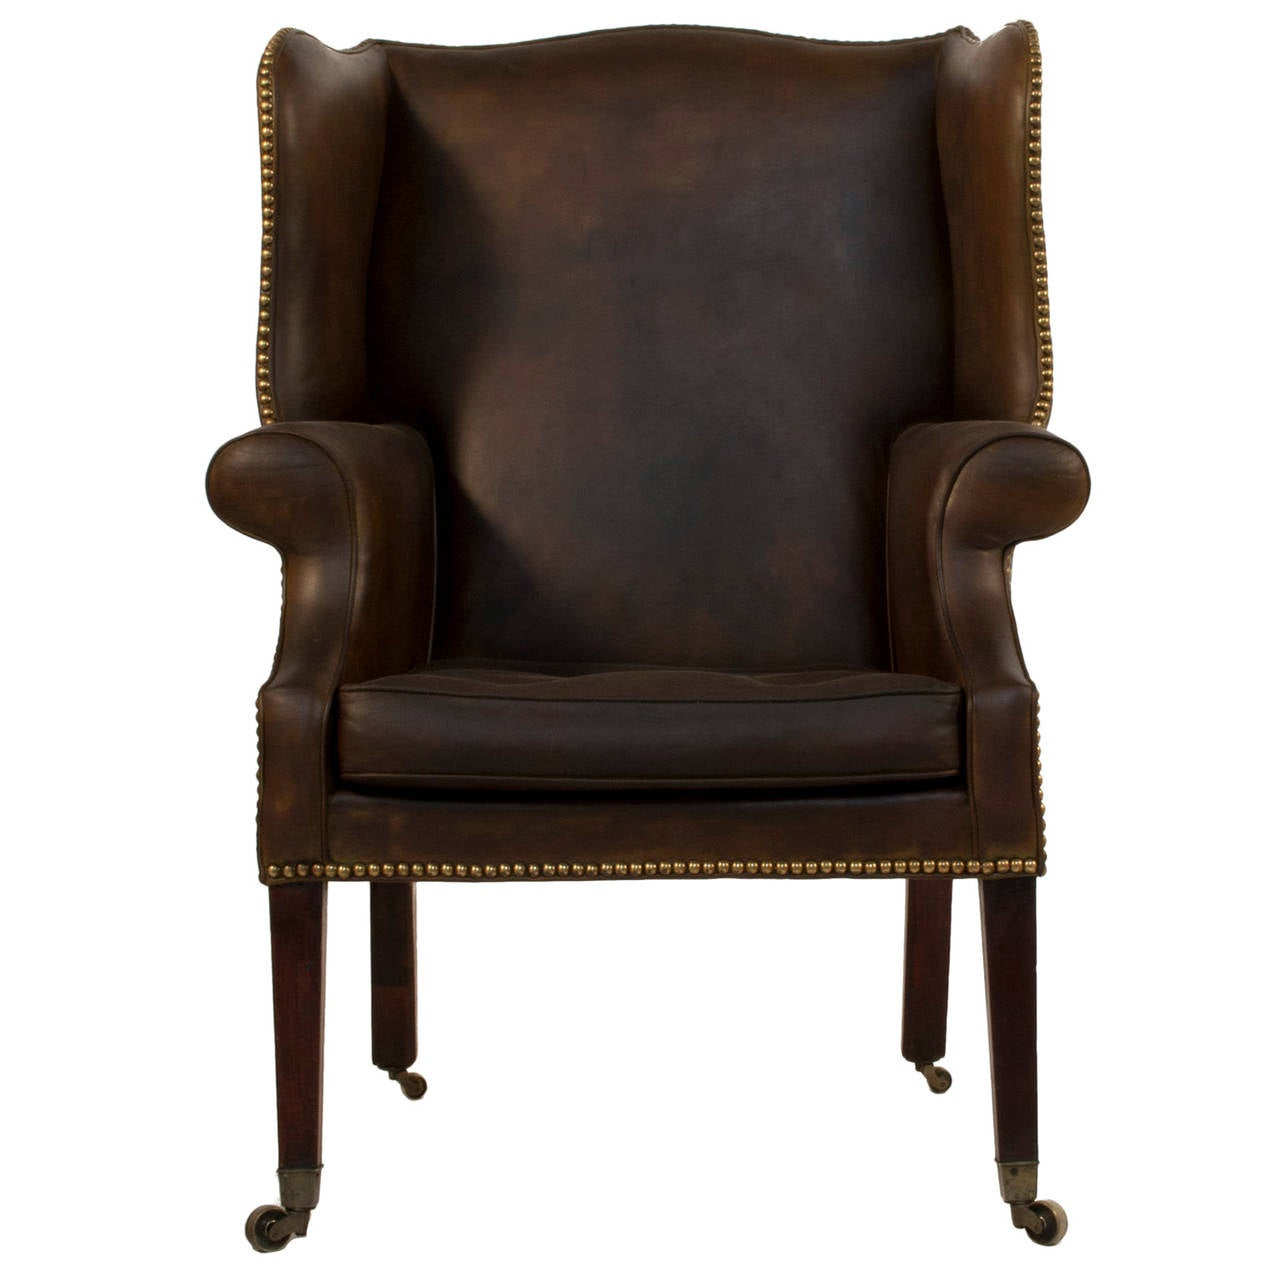 This Leather Wingback Chair is no longer available.